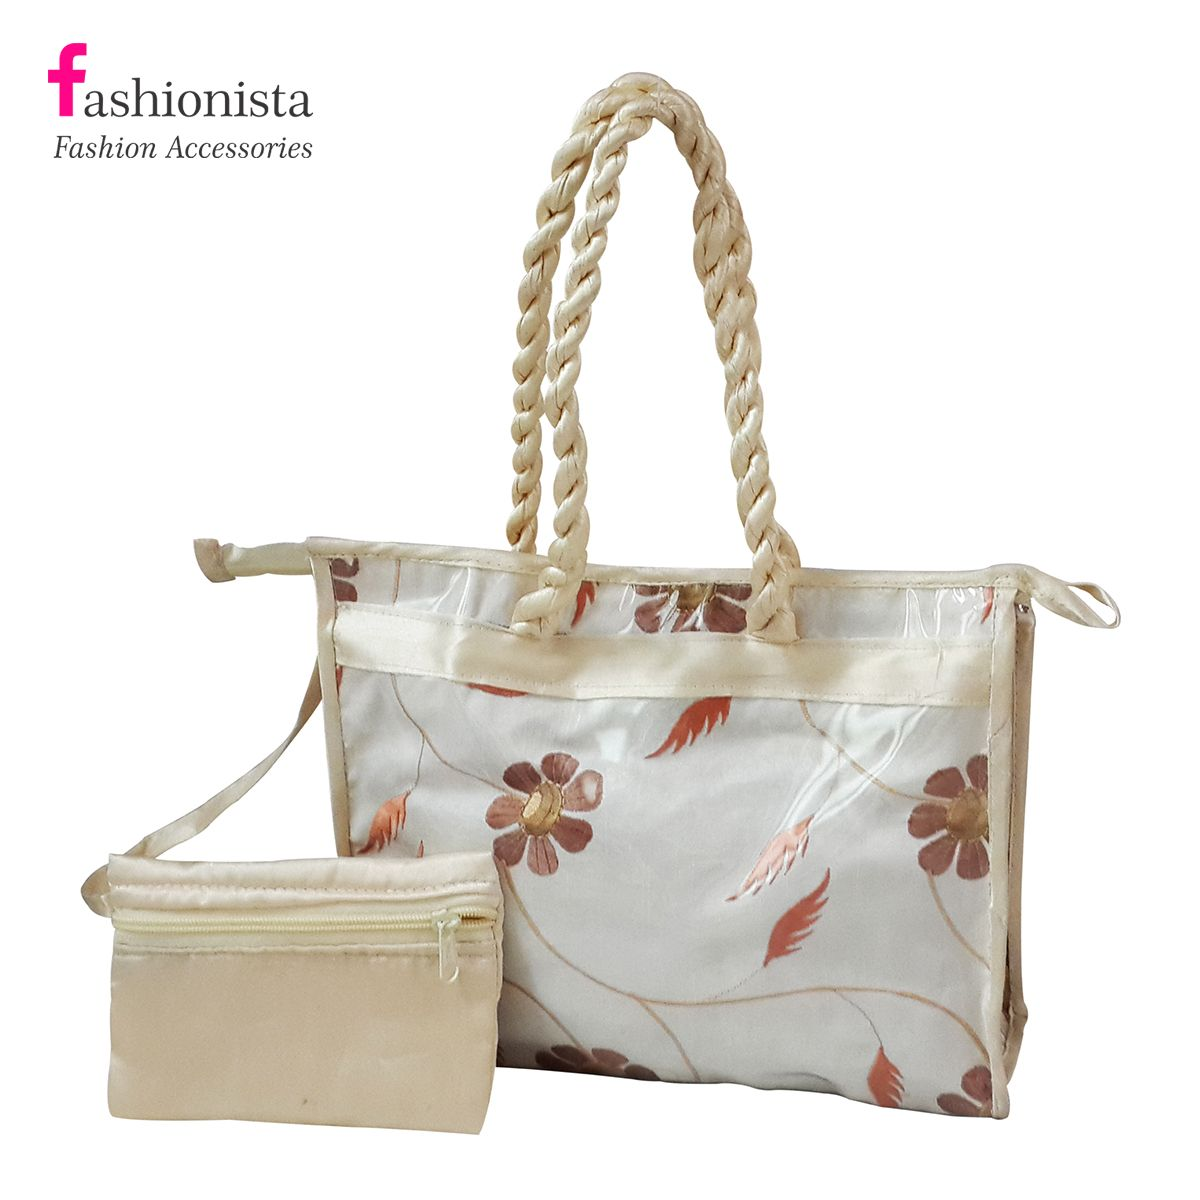 Buy Fashionista Trendy Hand Bag Raw Silk online in india at shopping adviser